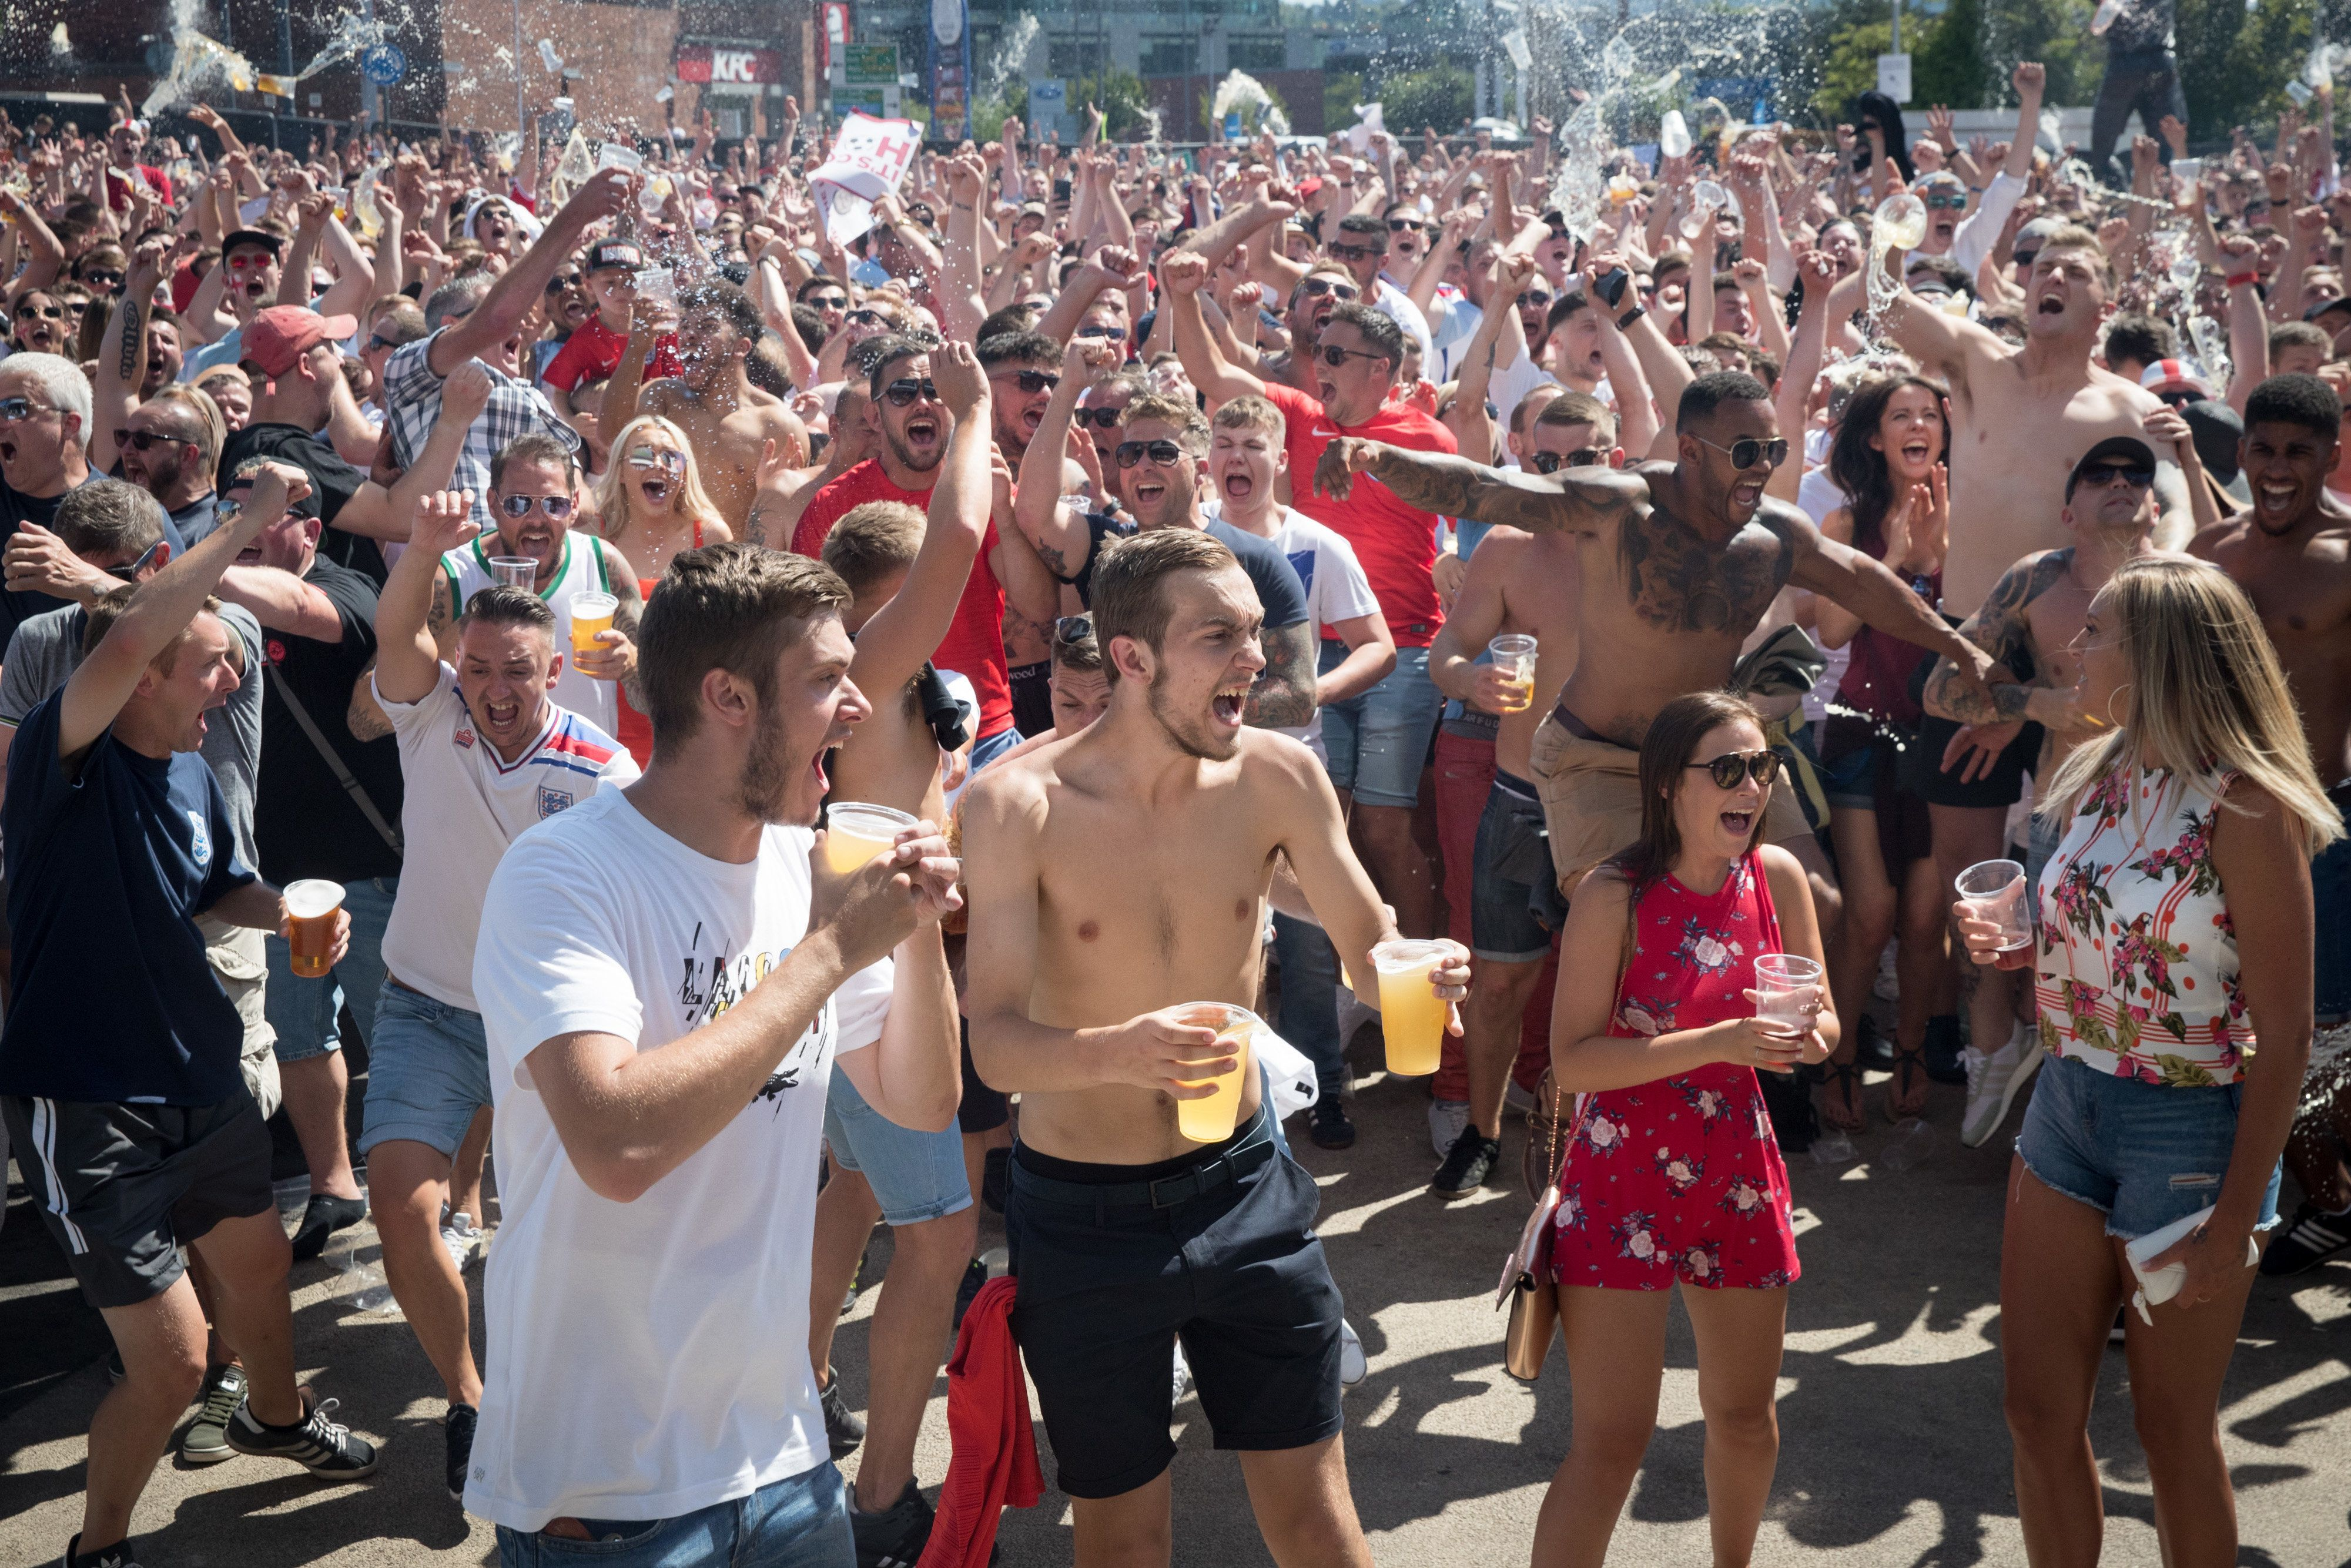 England World Cup Success Boosts Pub Spending By A Third, Study